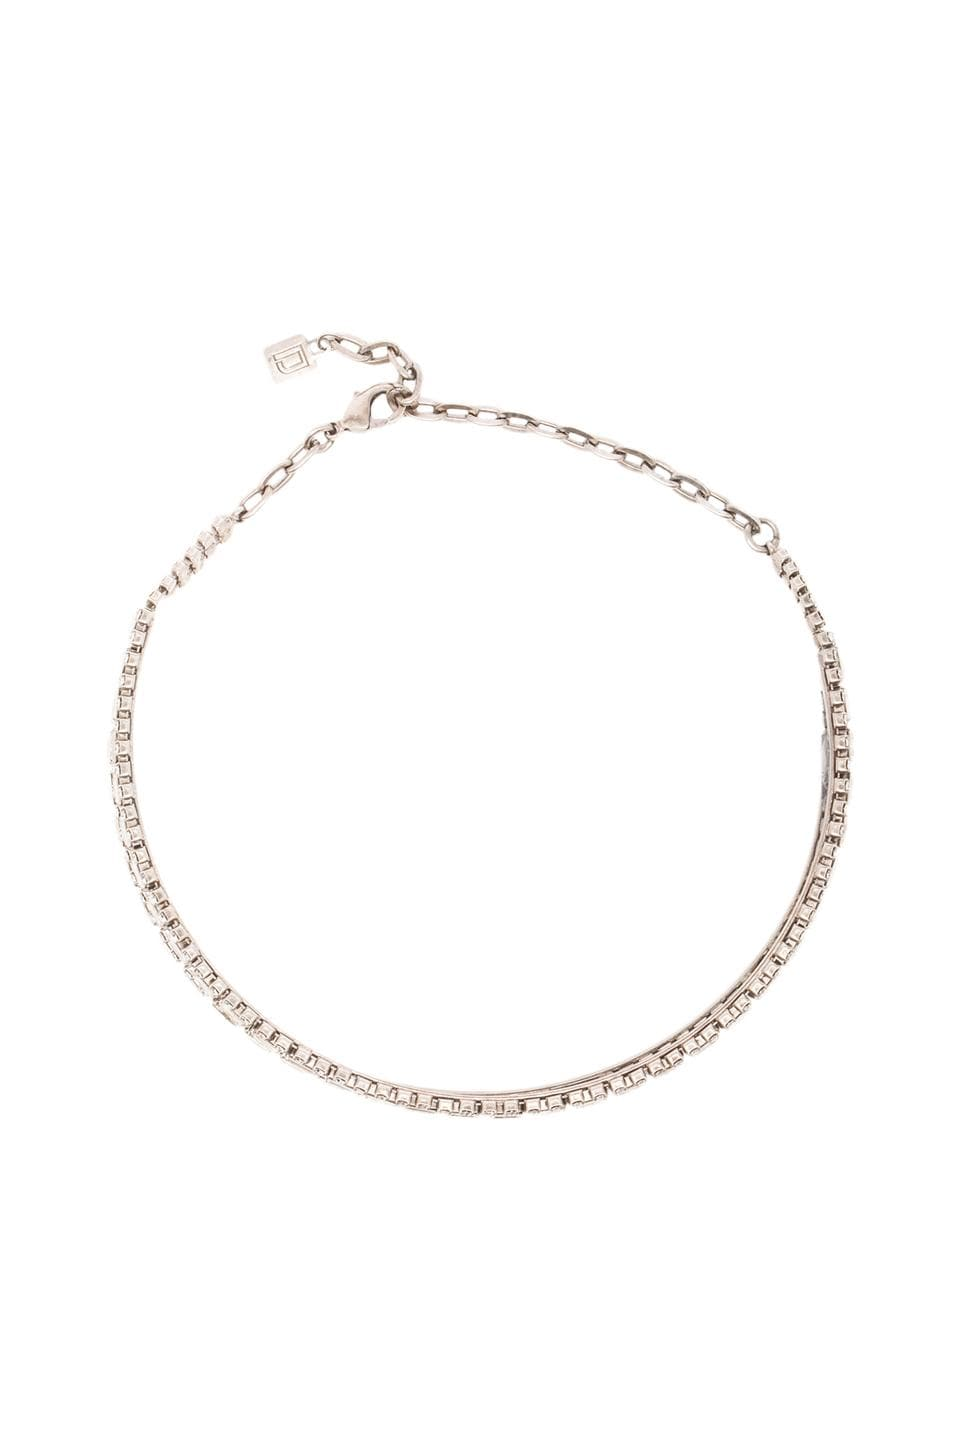 DANNIJO Thea Rhinestone Choker Necklace in Ox Silver/Clear